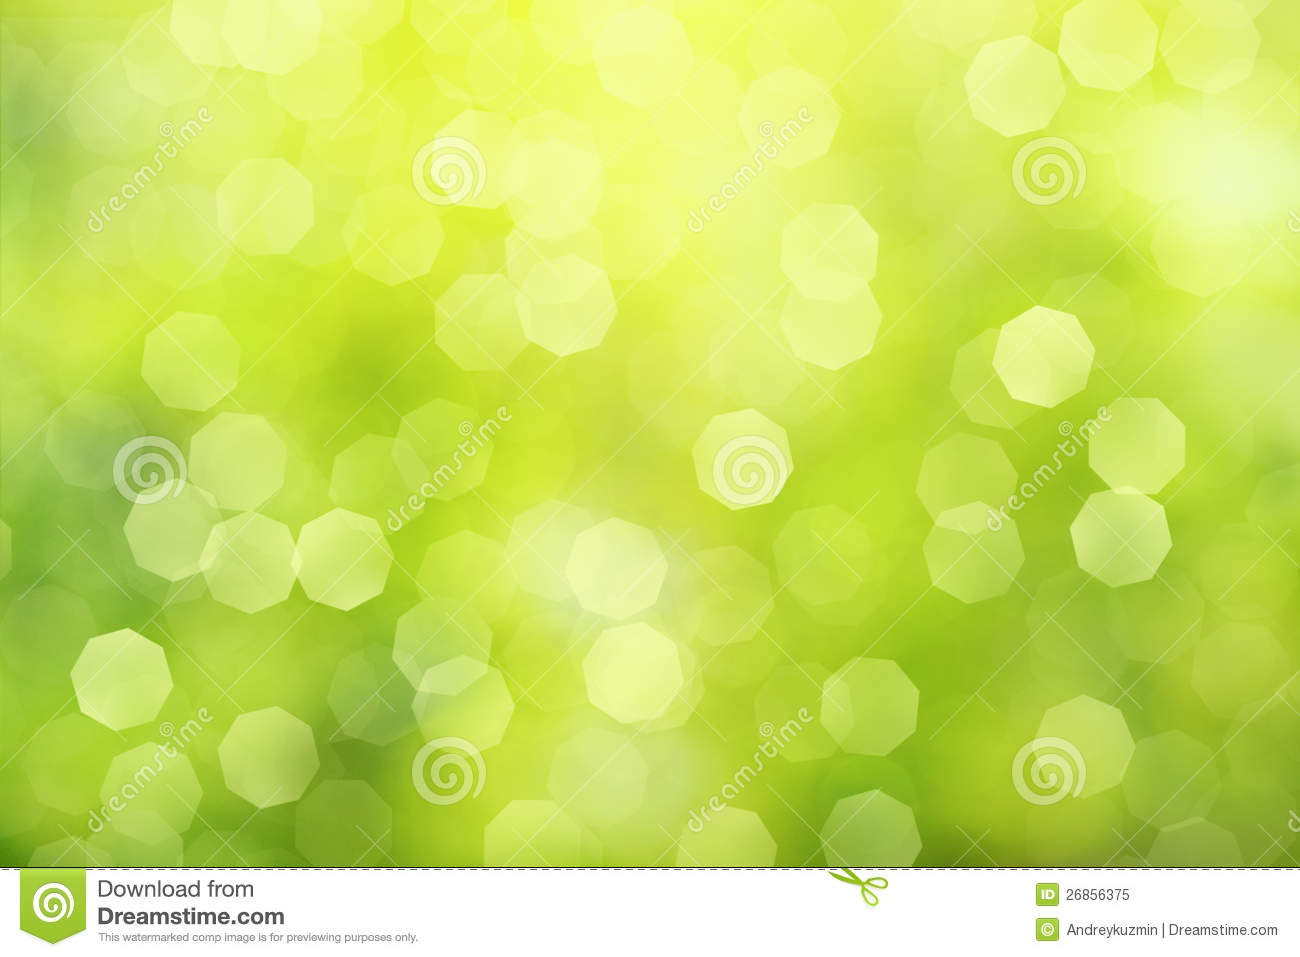 Girly Background Royalty Free Stock Photo: Defocused Green Abstract Background Stock Image